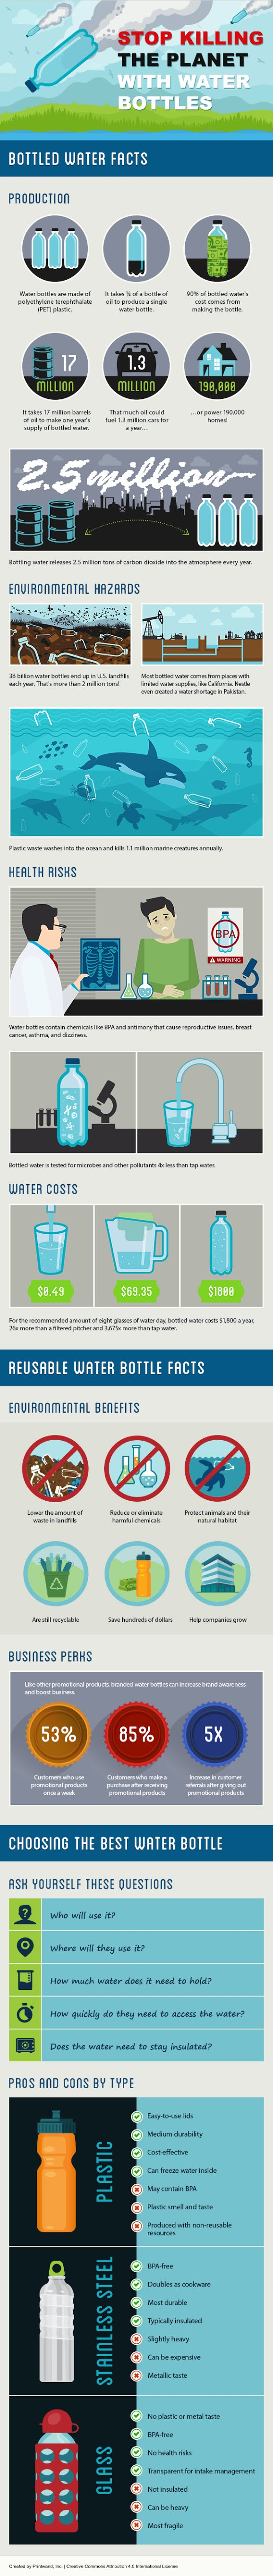 Stop Killing The Planet With Water Bottles #infographic #Water Bottles #infographics #Environment #Planet #Bottles #Disposable plastic